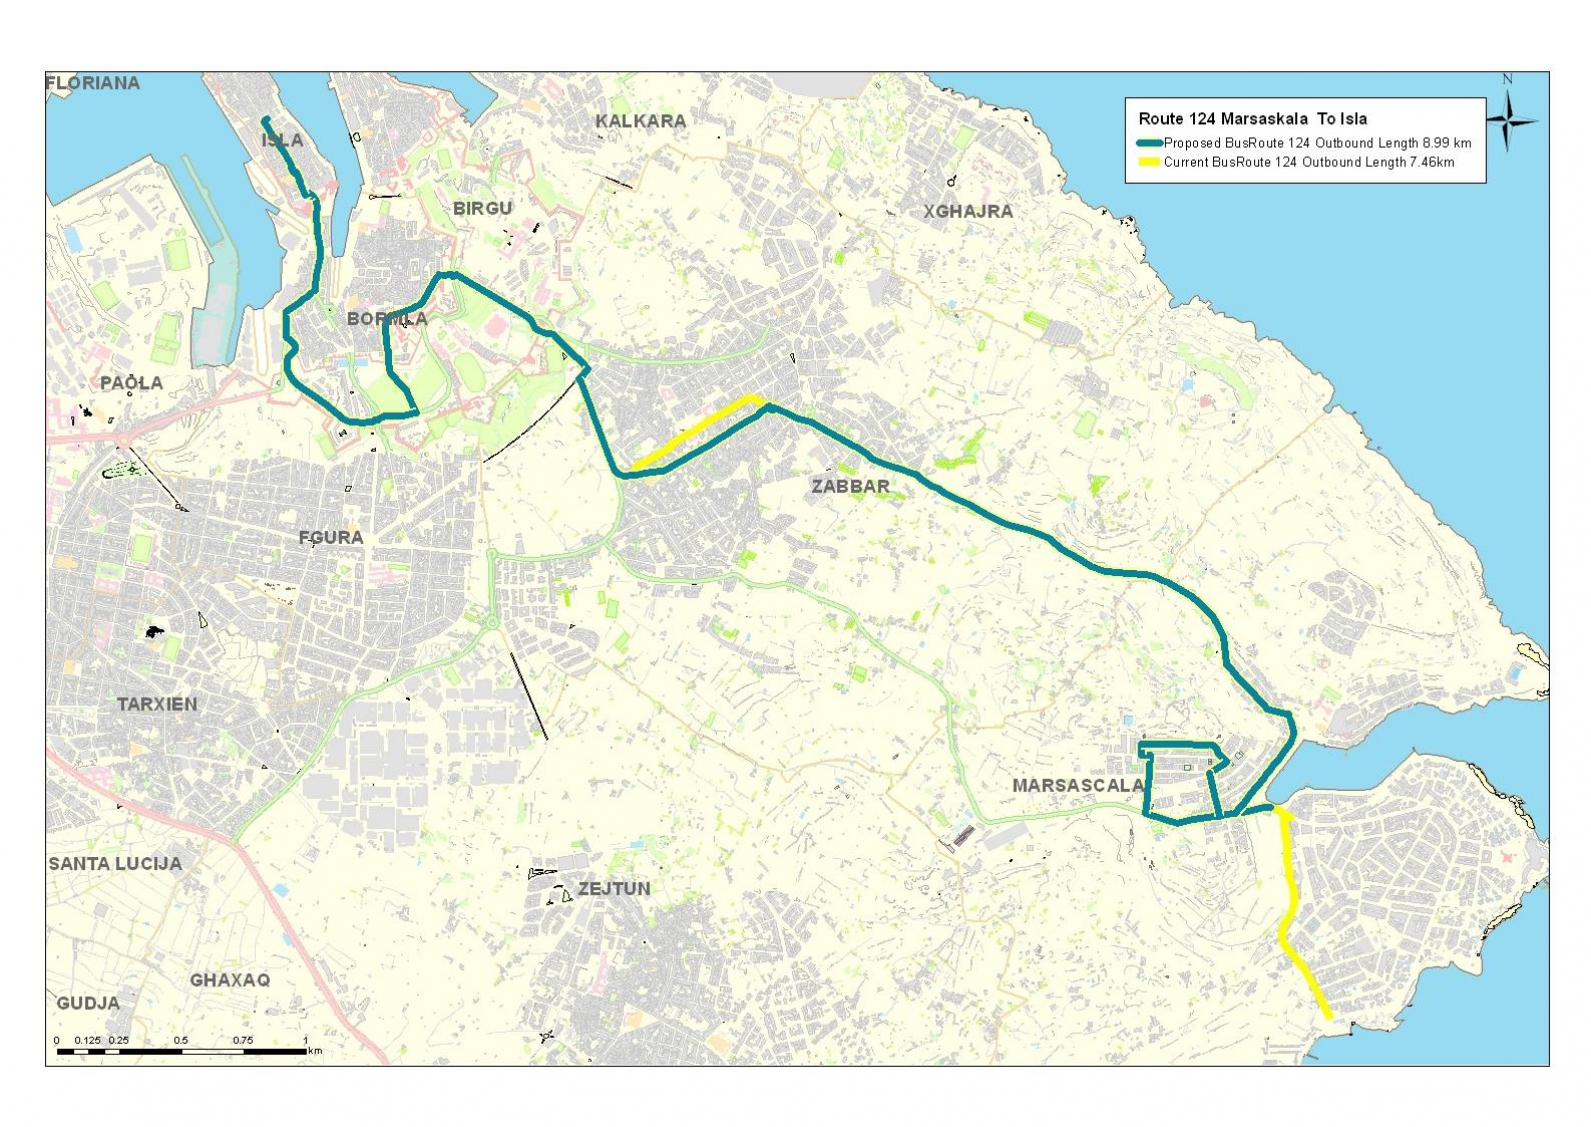 Land-current-network-routes-and-schedules-Cottonera-birgu-bormla-isla-kalkara-10